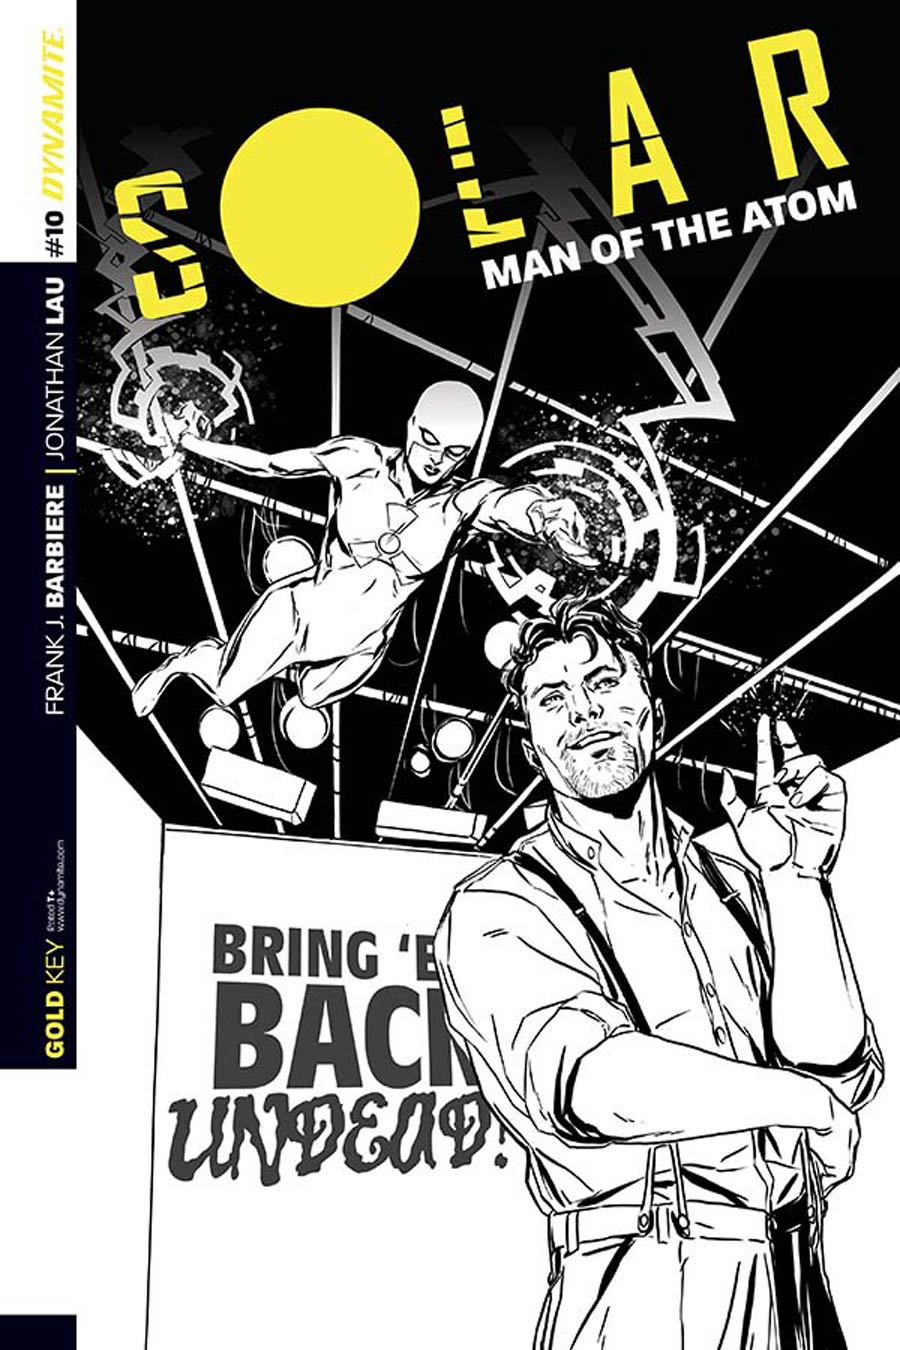 Solar Man Of The Atom Vol 2 #10 Cover C Incentive Marc Laming Black & White Cover